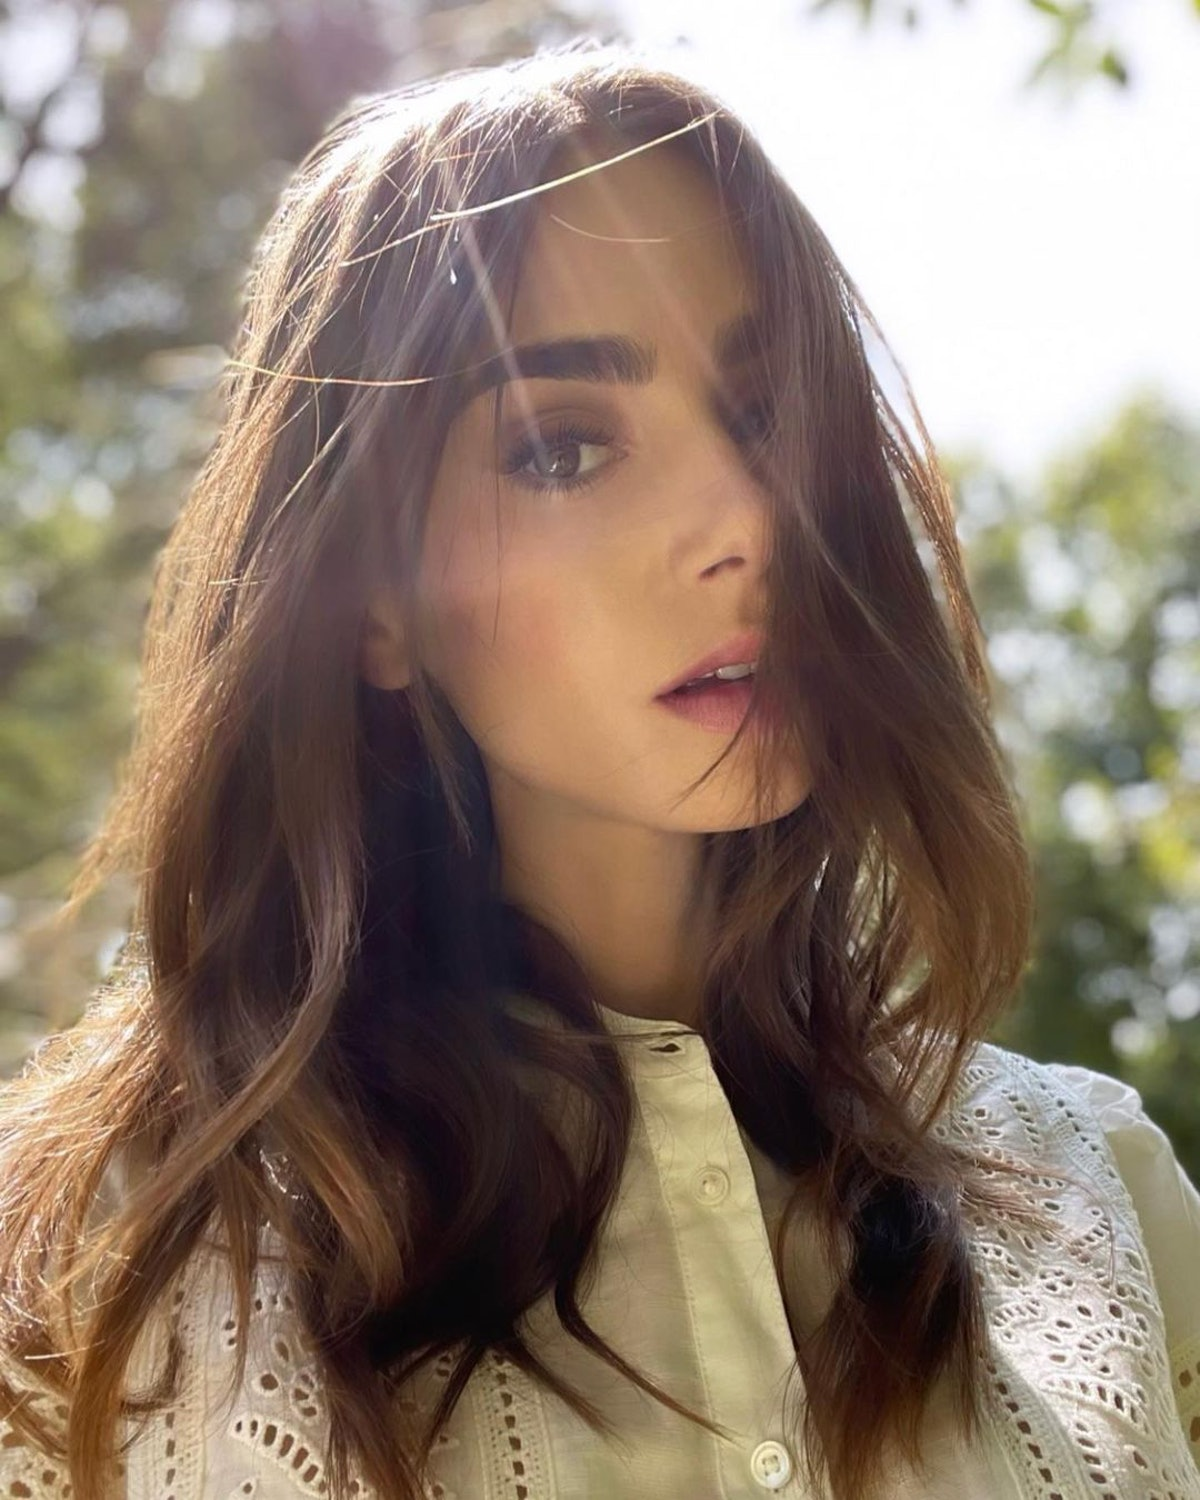 Lily Collins poses in a selfie.